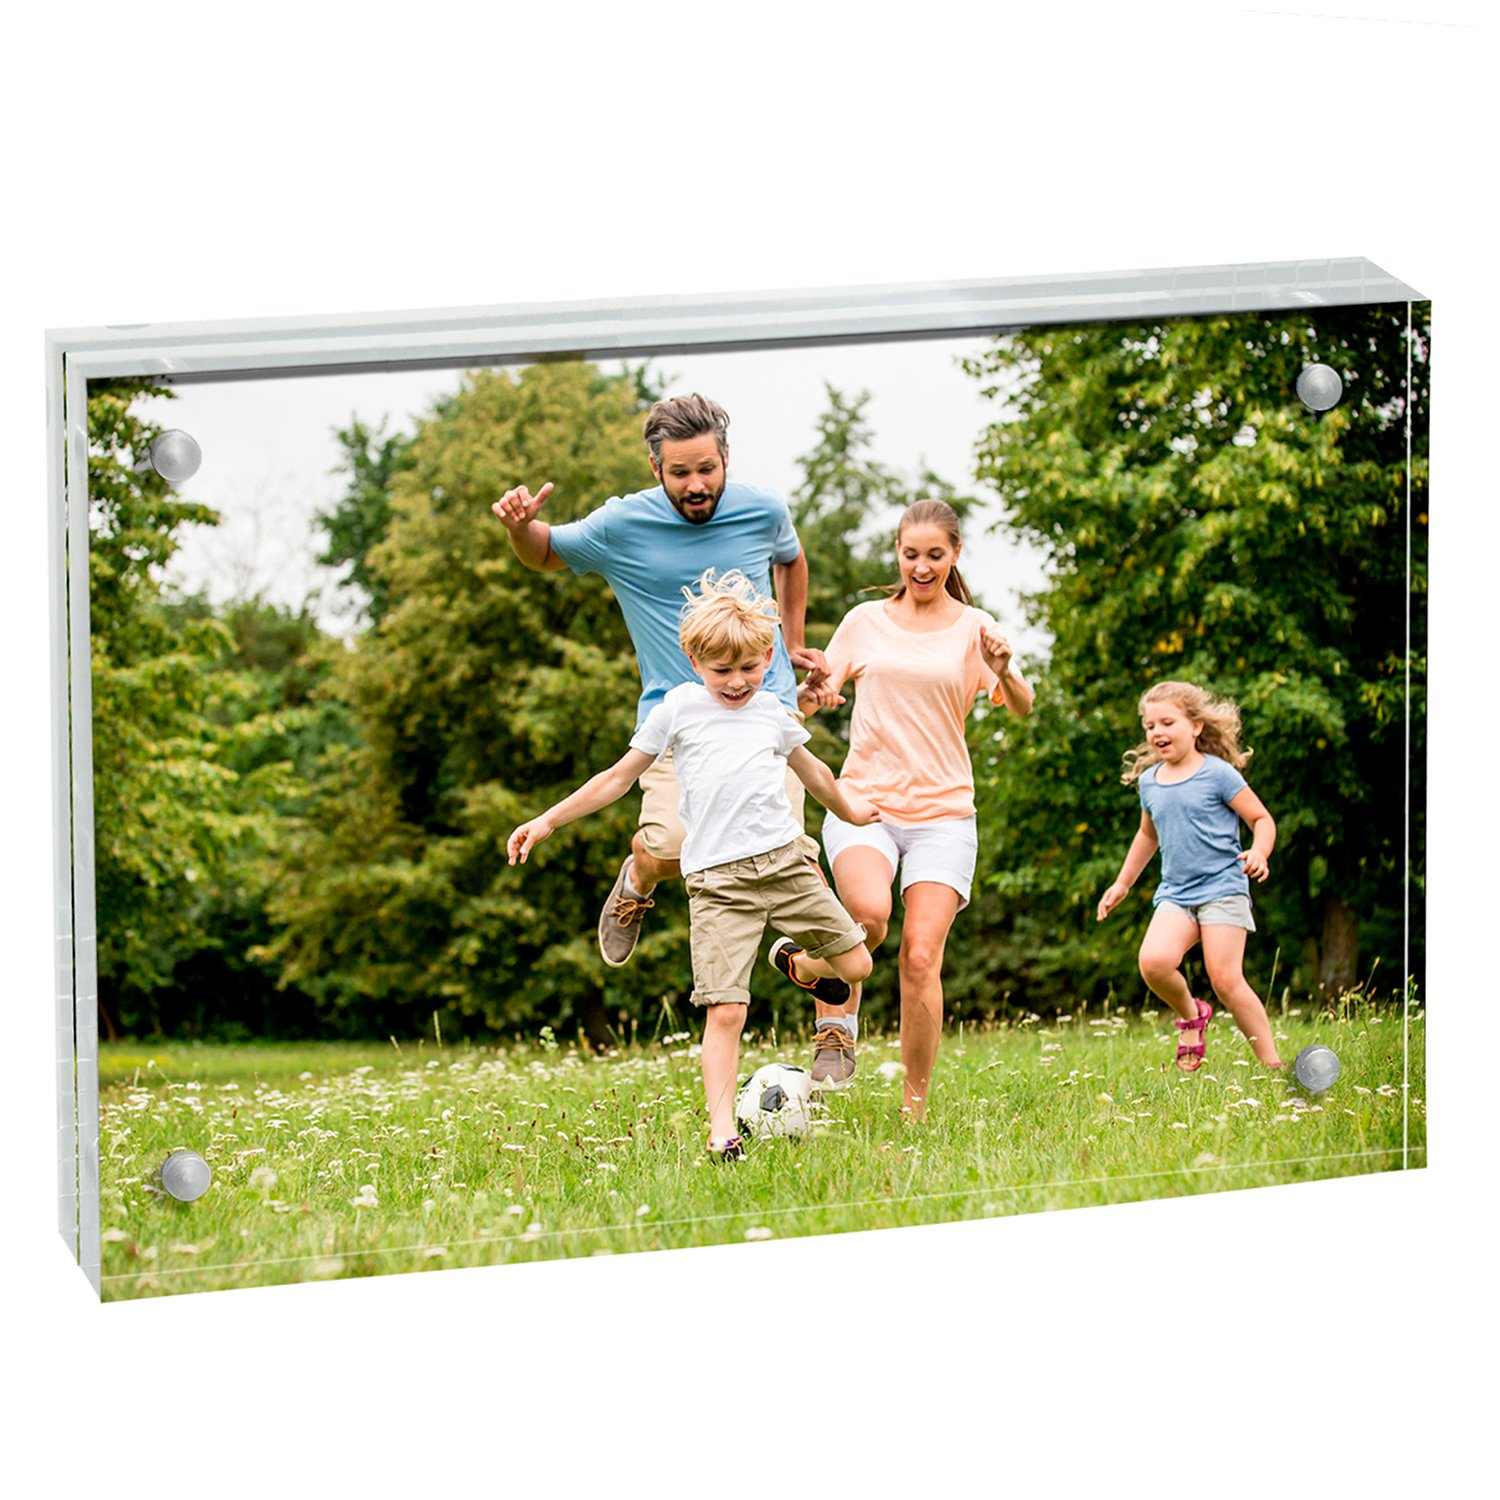 MeetU Acrylic 4x6 Picture Frame Two Sided Desk Photo Frame Magnetic Frame Inner Size 3x5 with Gift Pack for Display Family Pictures Baby Photos Friends Pictures or Pet Dog Picture by MeetU (Image #2)